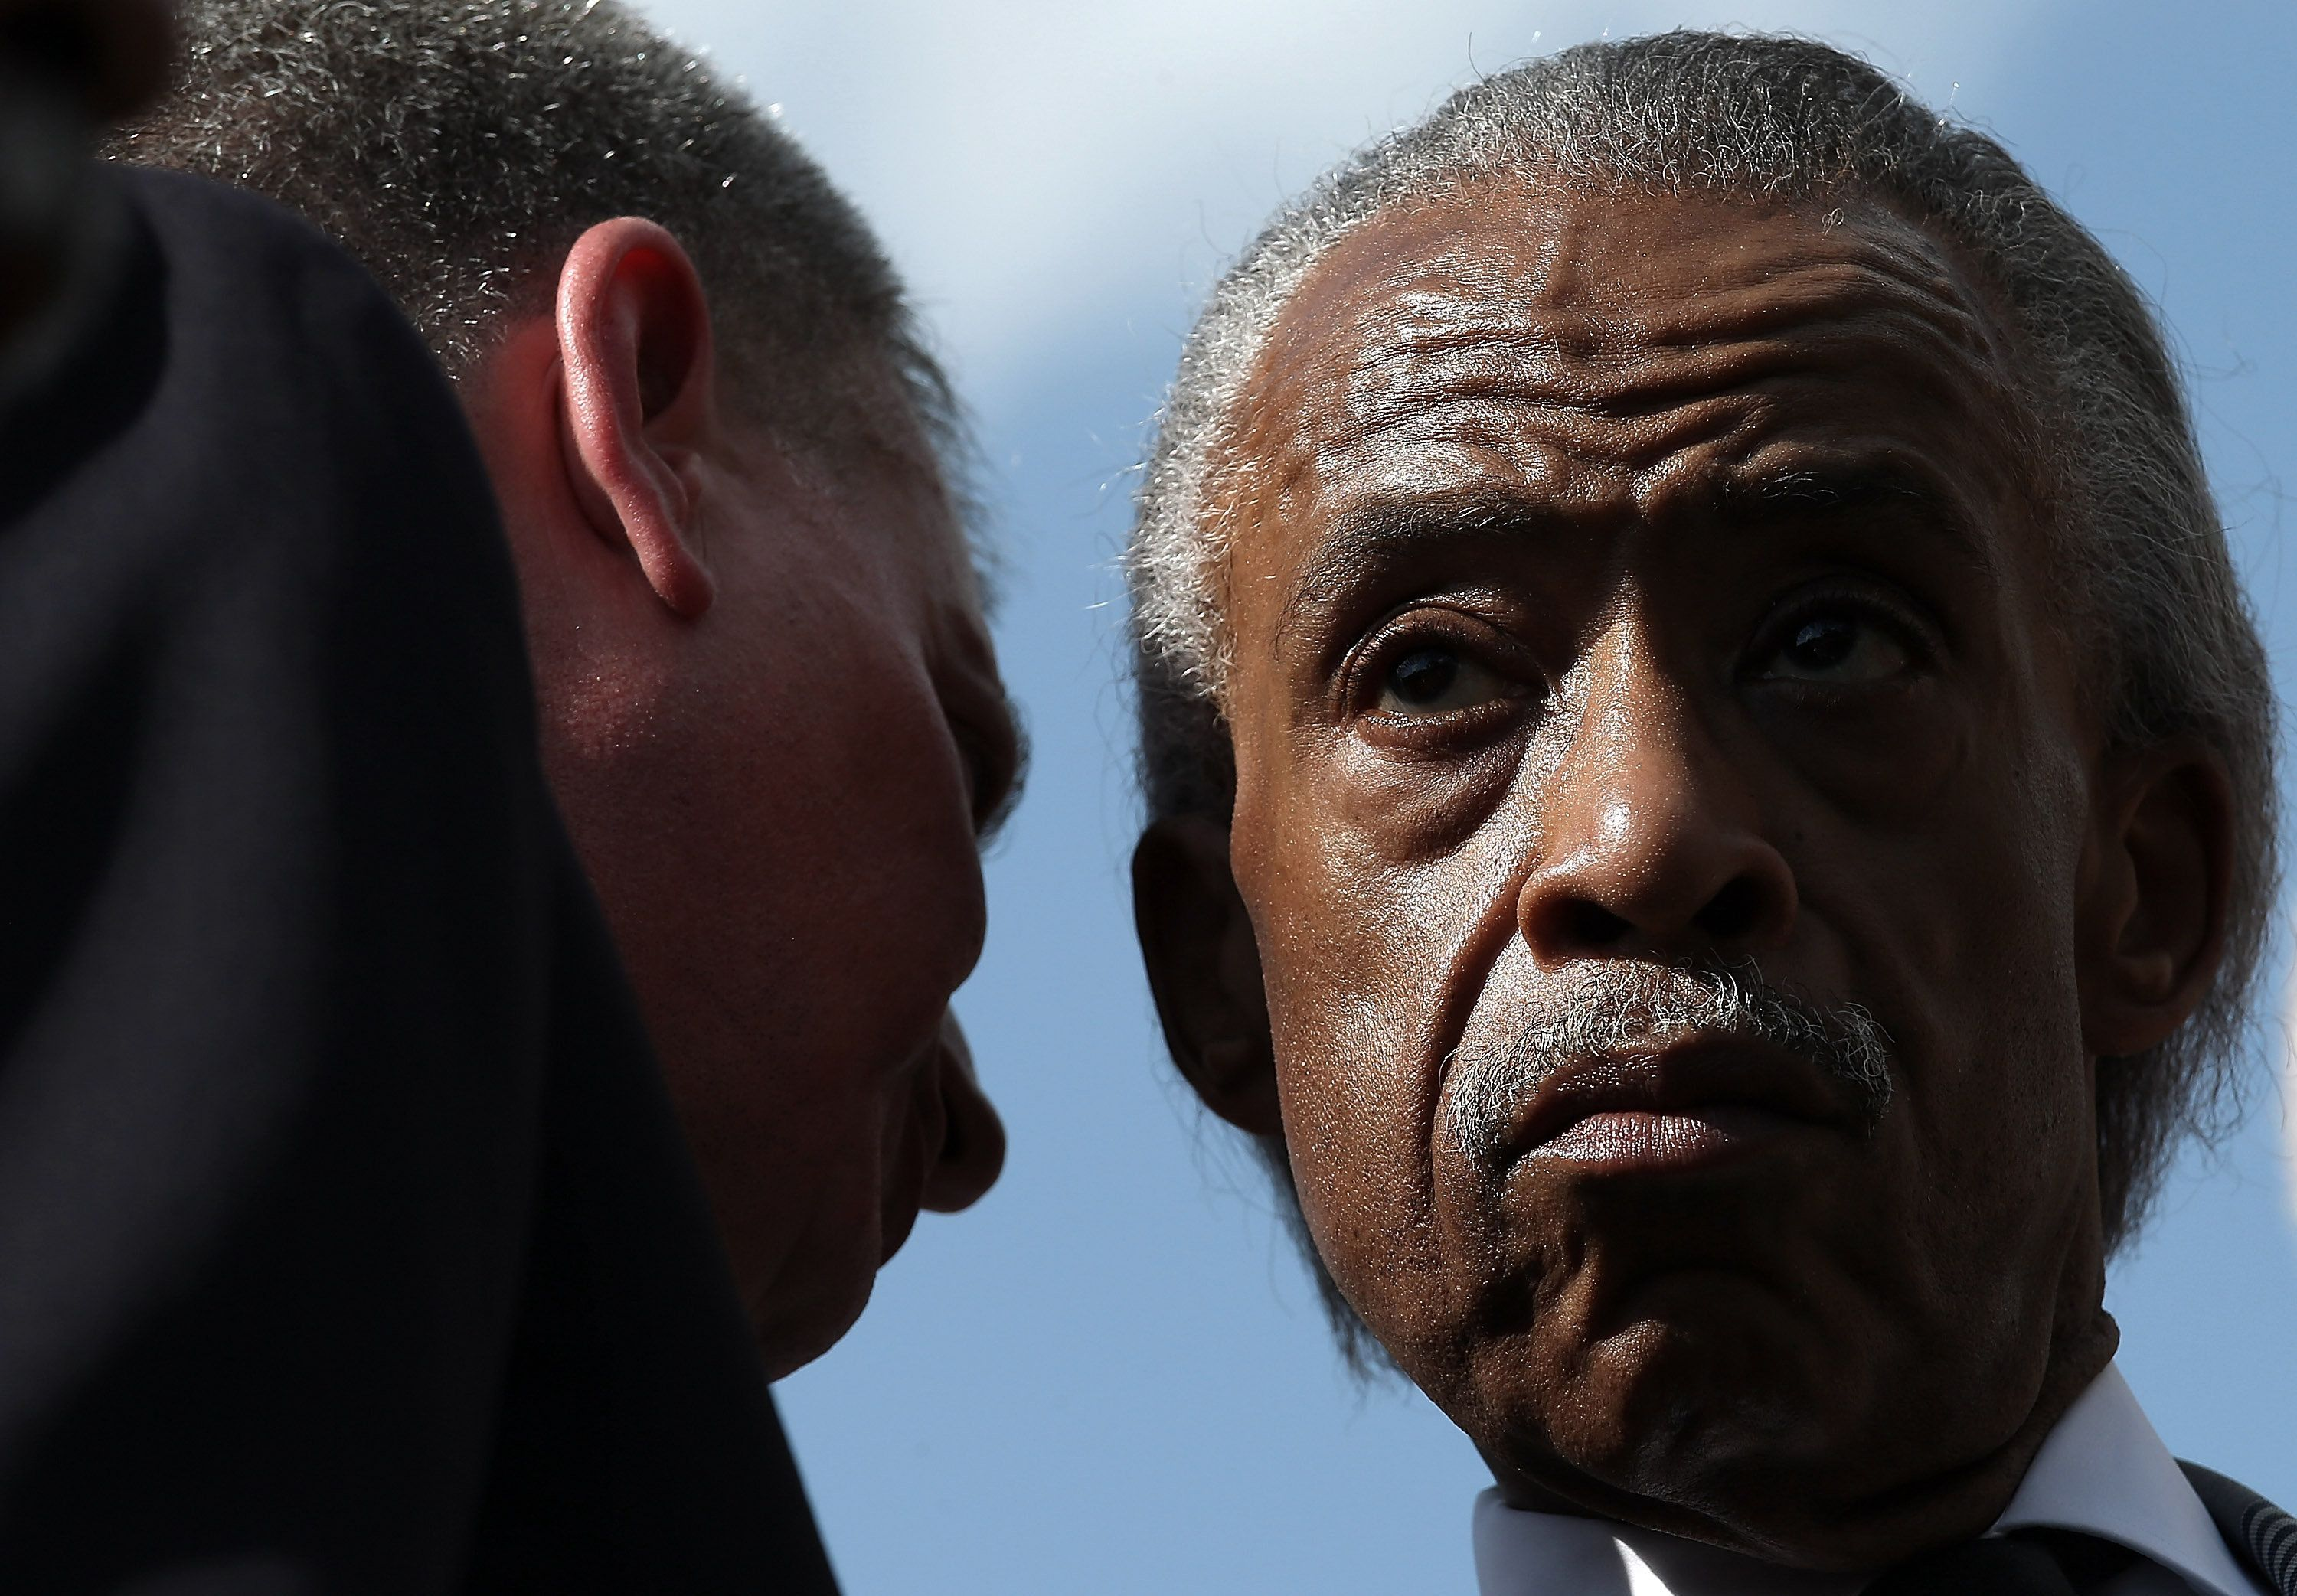 WASHINGTON, DC - MAY 12:  New York Mayor Bill de Blasio (L) speaks with the Rev. Al Sharpton (R) outside the U.S. Capitol May 12, 2015 in Washington, DC. De Blasio joined with members of the Congressional Progressive Caucus and union representatives to call for a 'progressive agenda to combat income inequality.'  (Photo by Win McNamee/Getty Images)